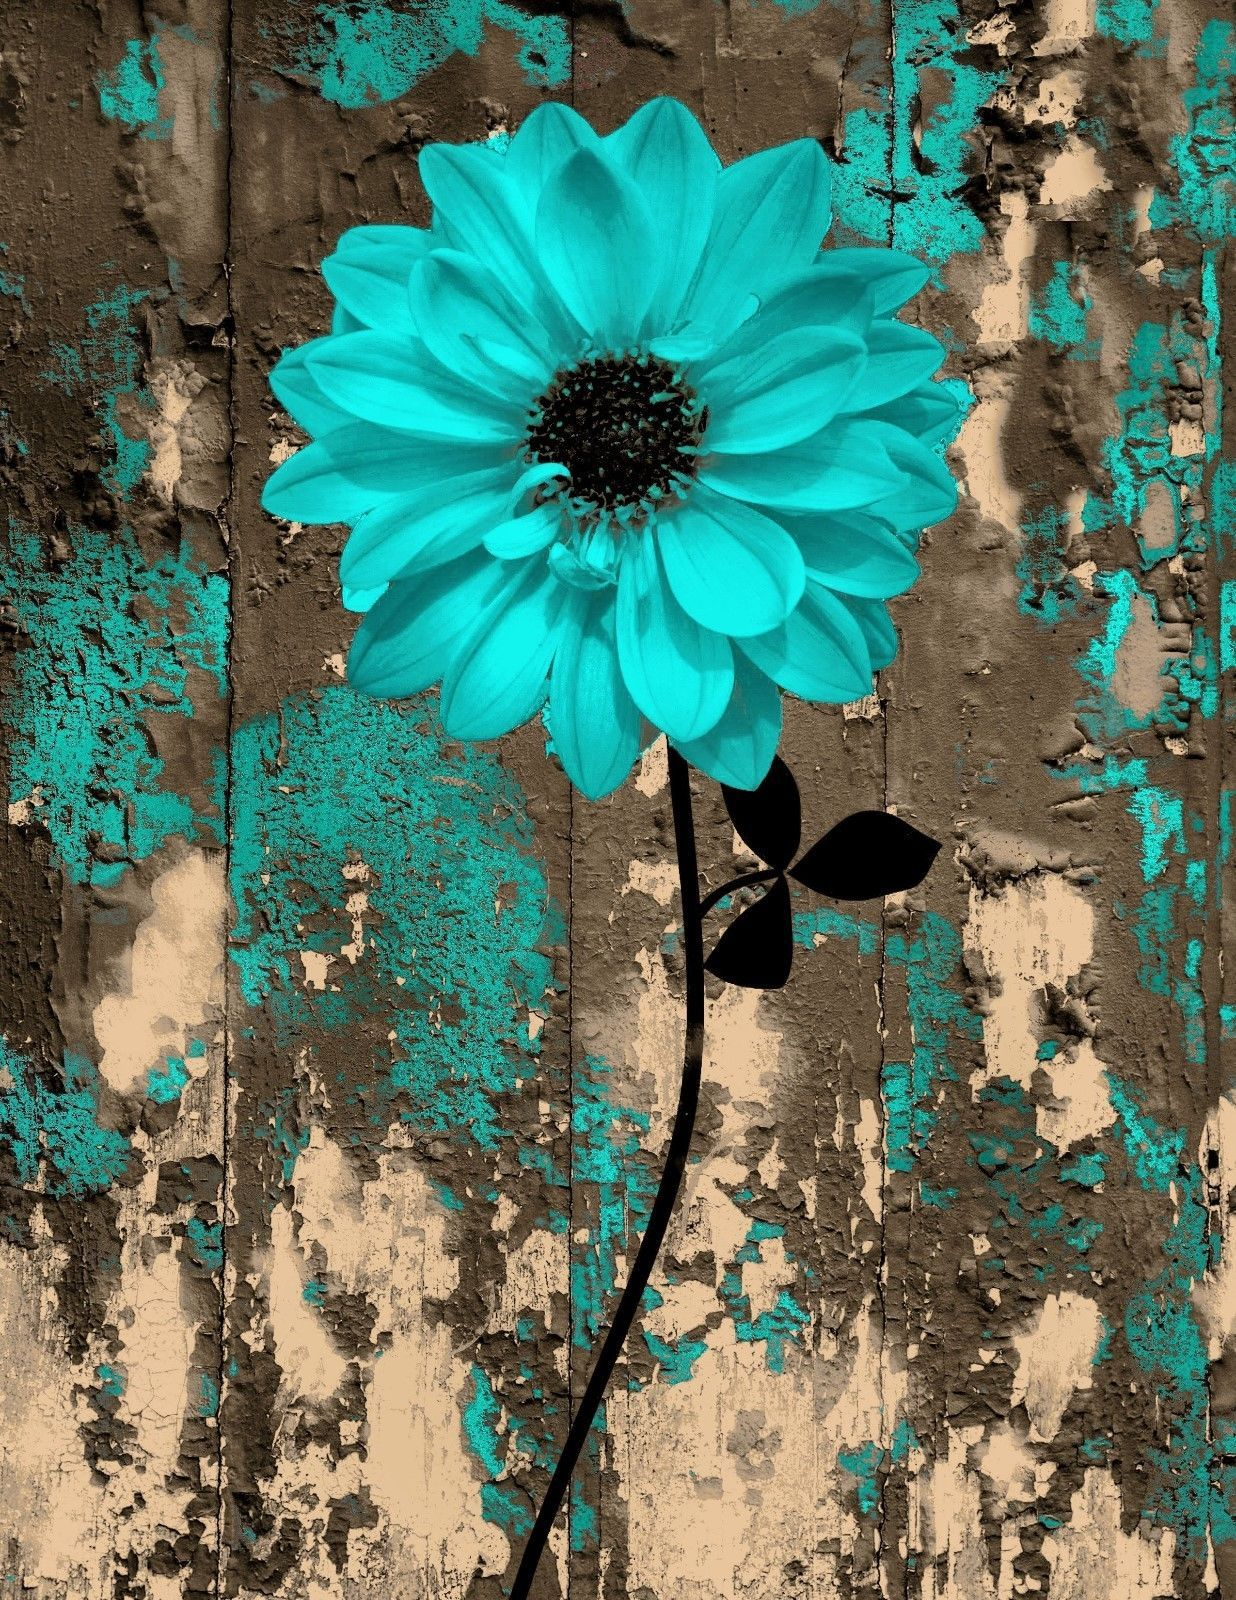 Teal And Brown Wall Art rustic teal brown floral bedroom/bathroom wall art home decor